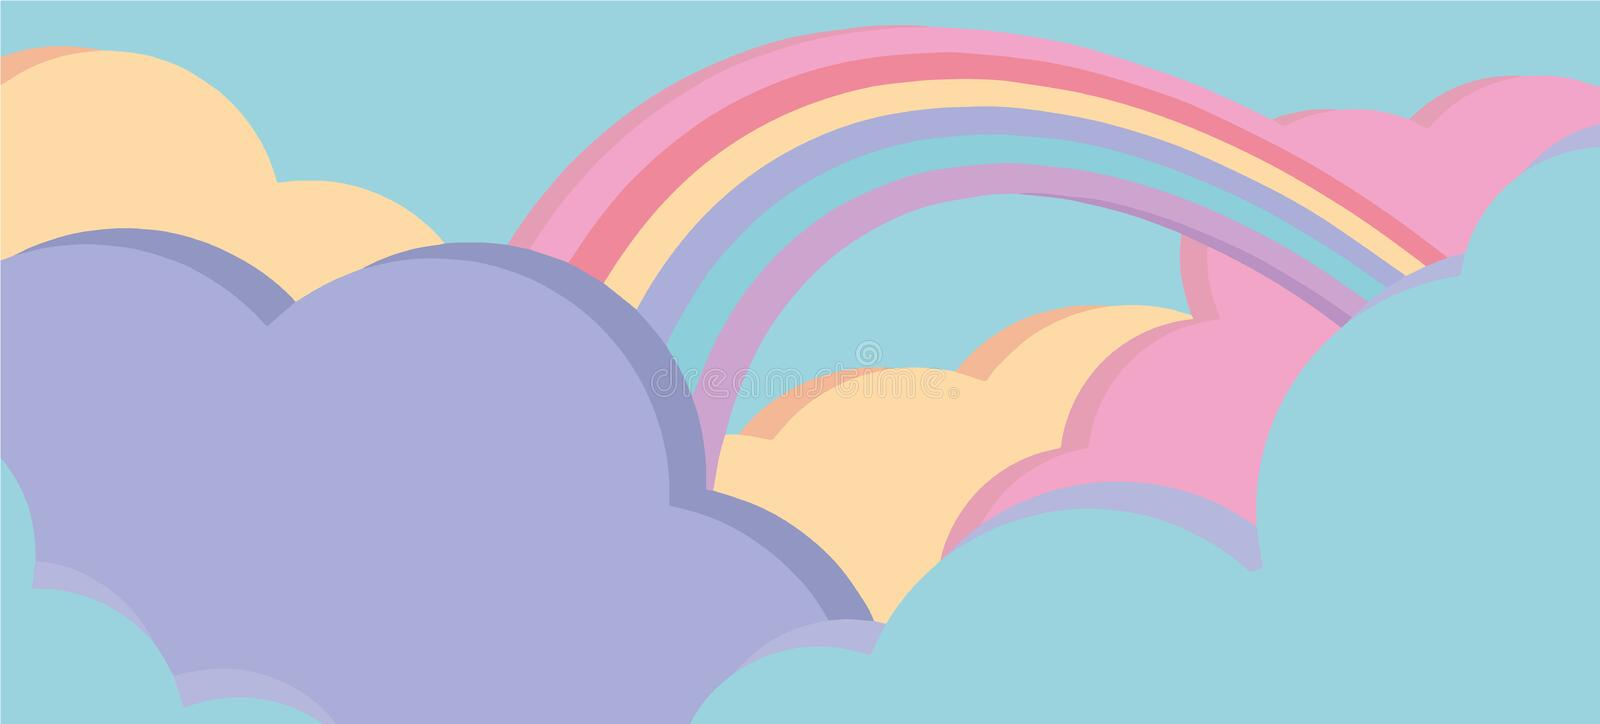 Fantasy sky scene with cute pink and bue clouds and colorful rainbow cartoon style vector background royalty free illustration